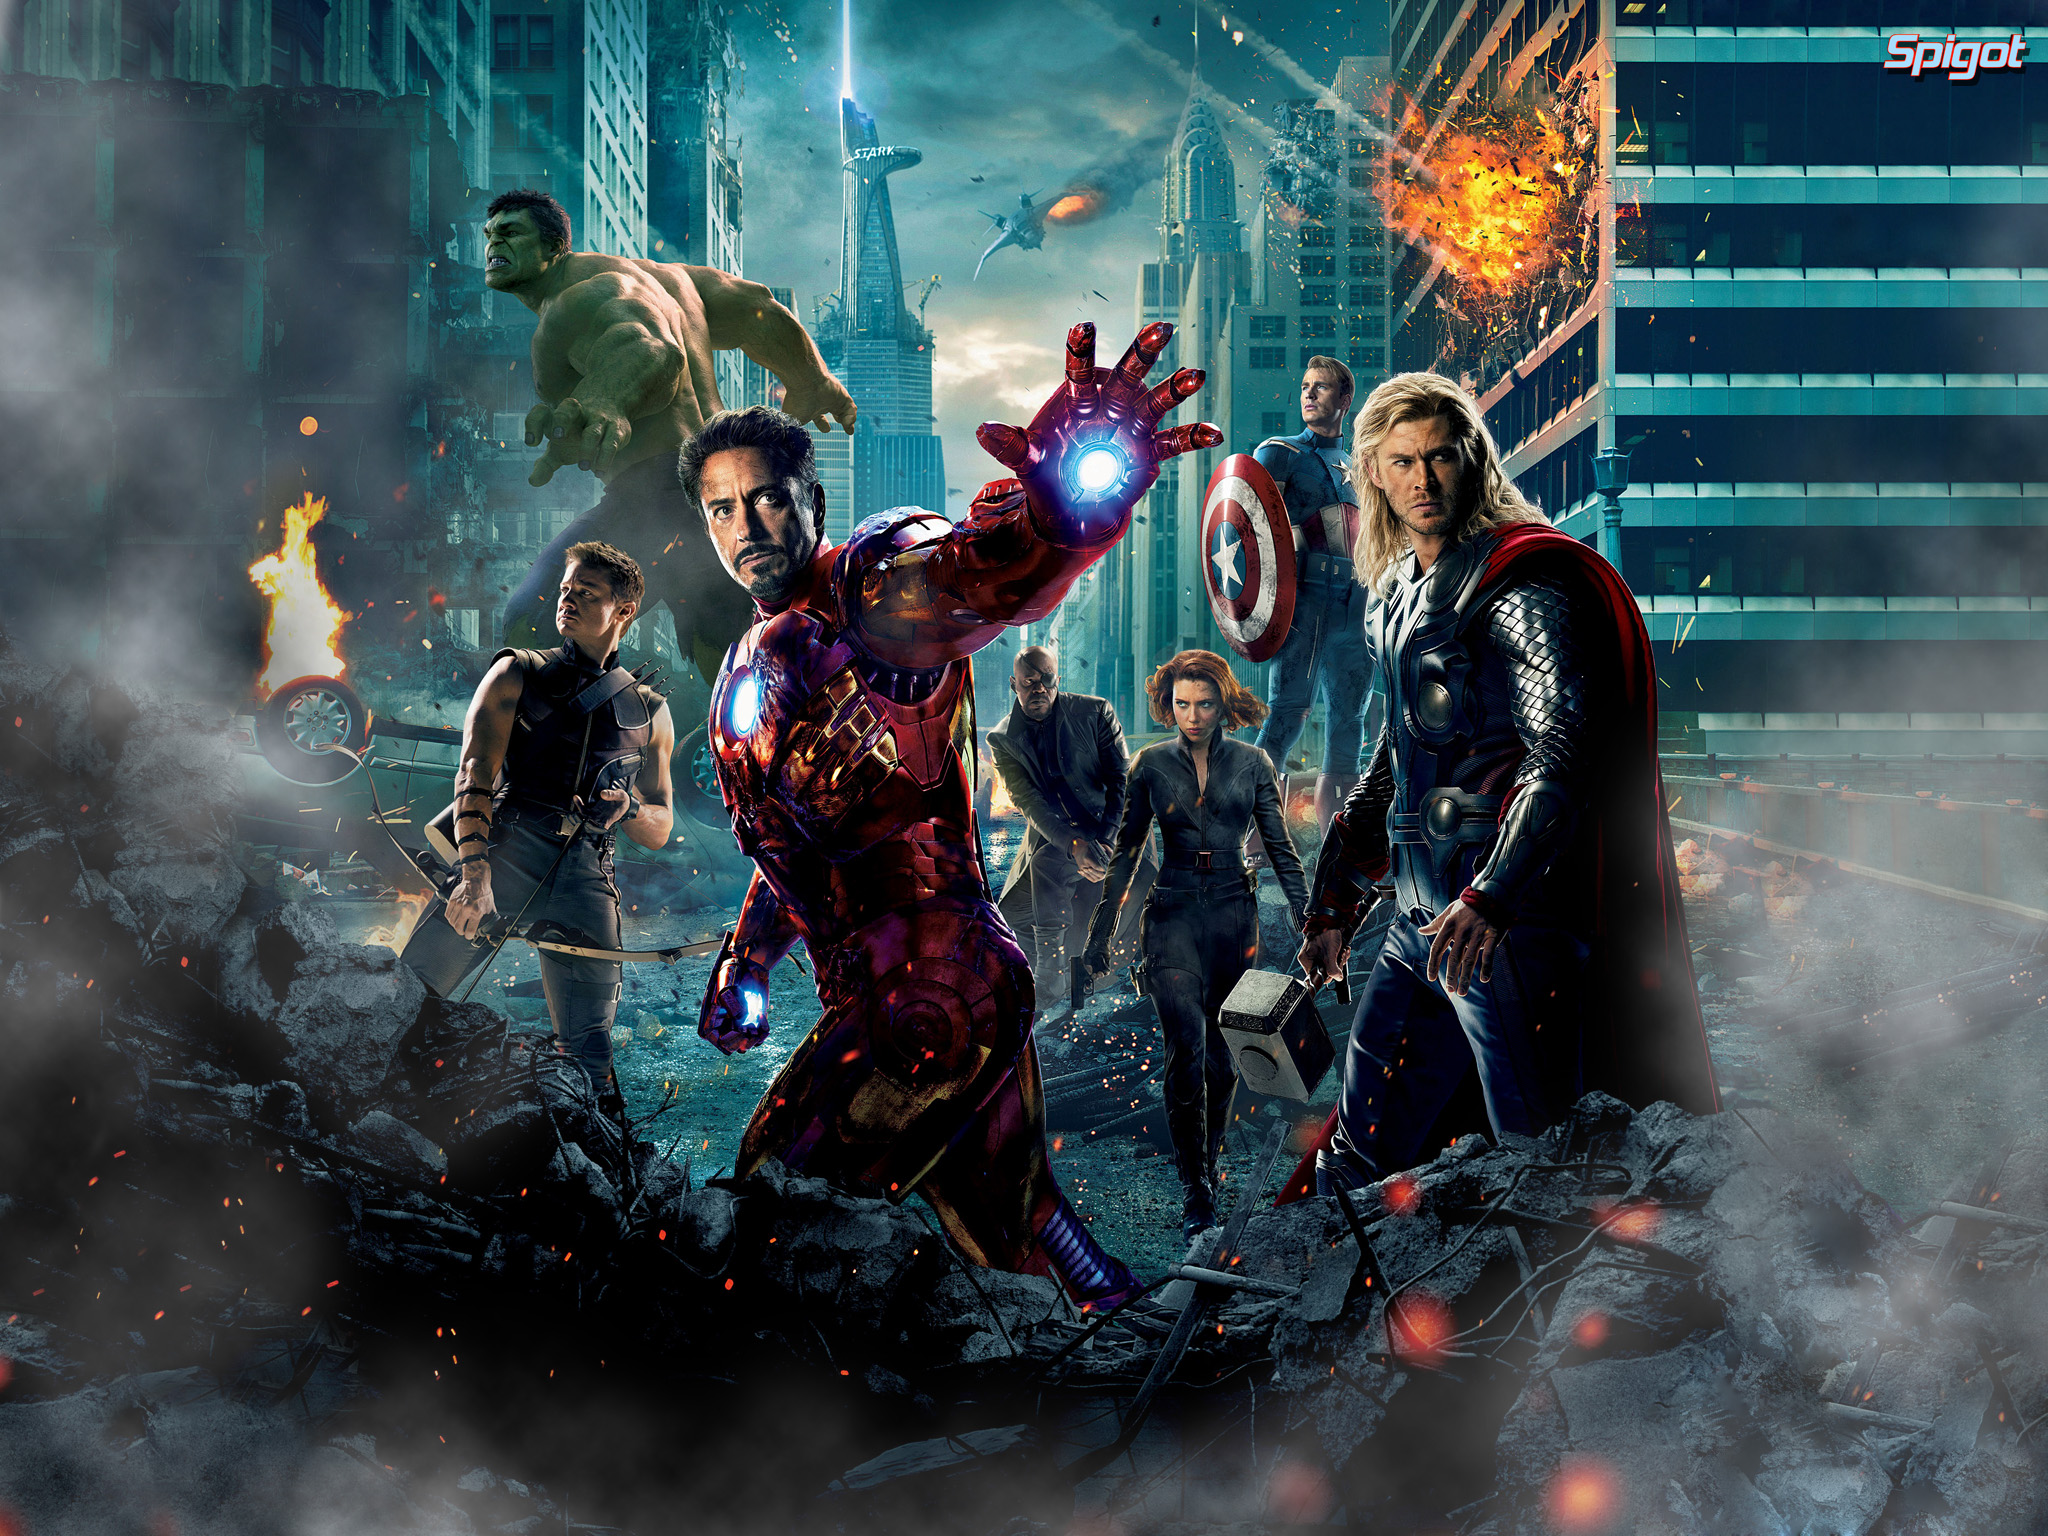 Best Wallpaper Marvel Ipad - the-avengers-ipad-hd-011  You Should Have_99569.jpg